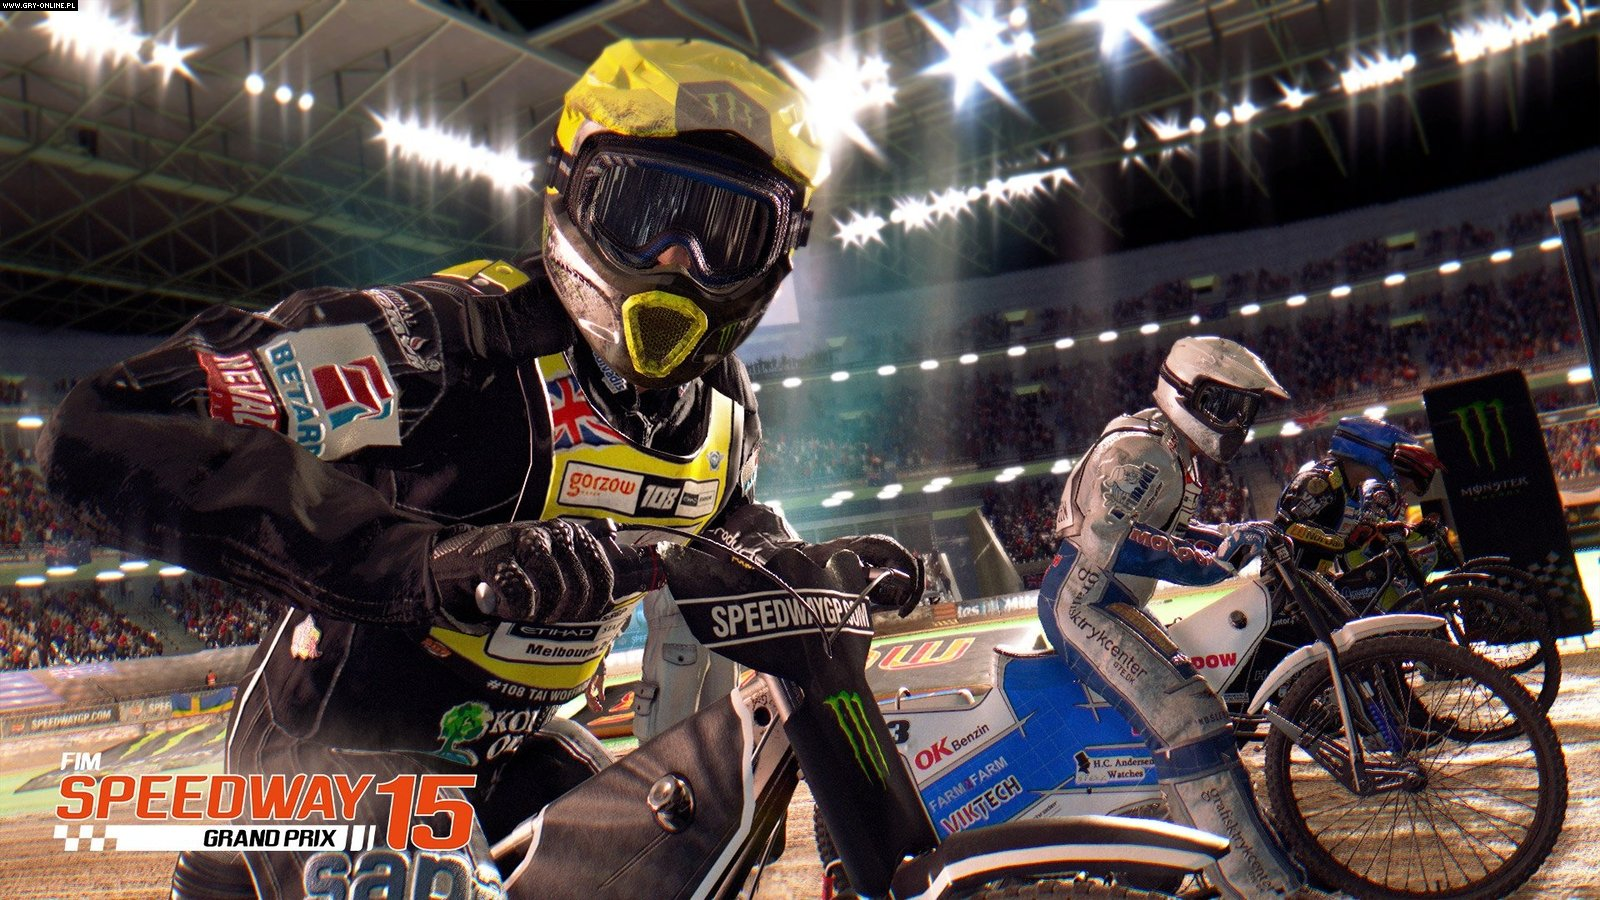 FIM Speedway Grand Prix 15 PC Gry Screen 5/10, Techland, Excalibur Publishing Limited